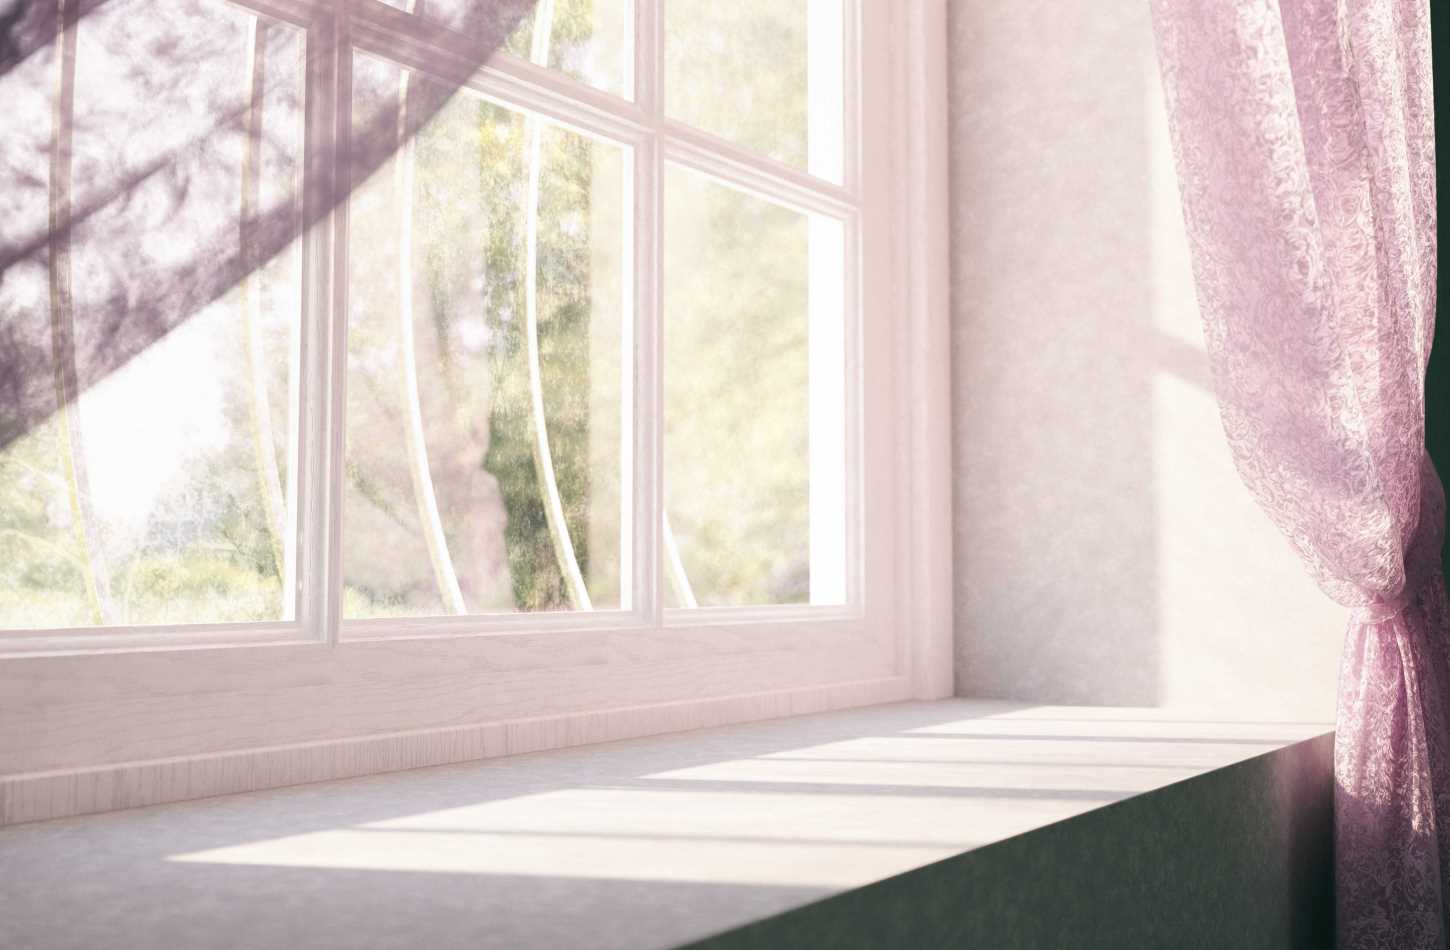 a window and window sill with pinky shades